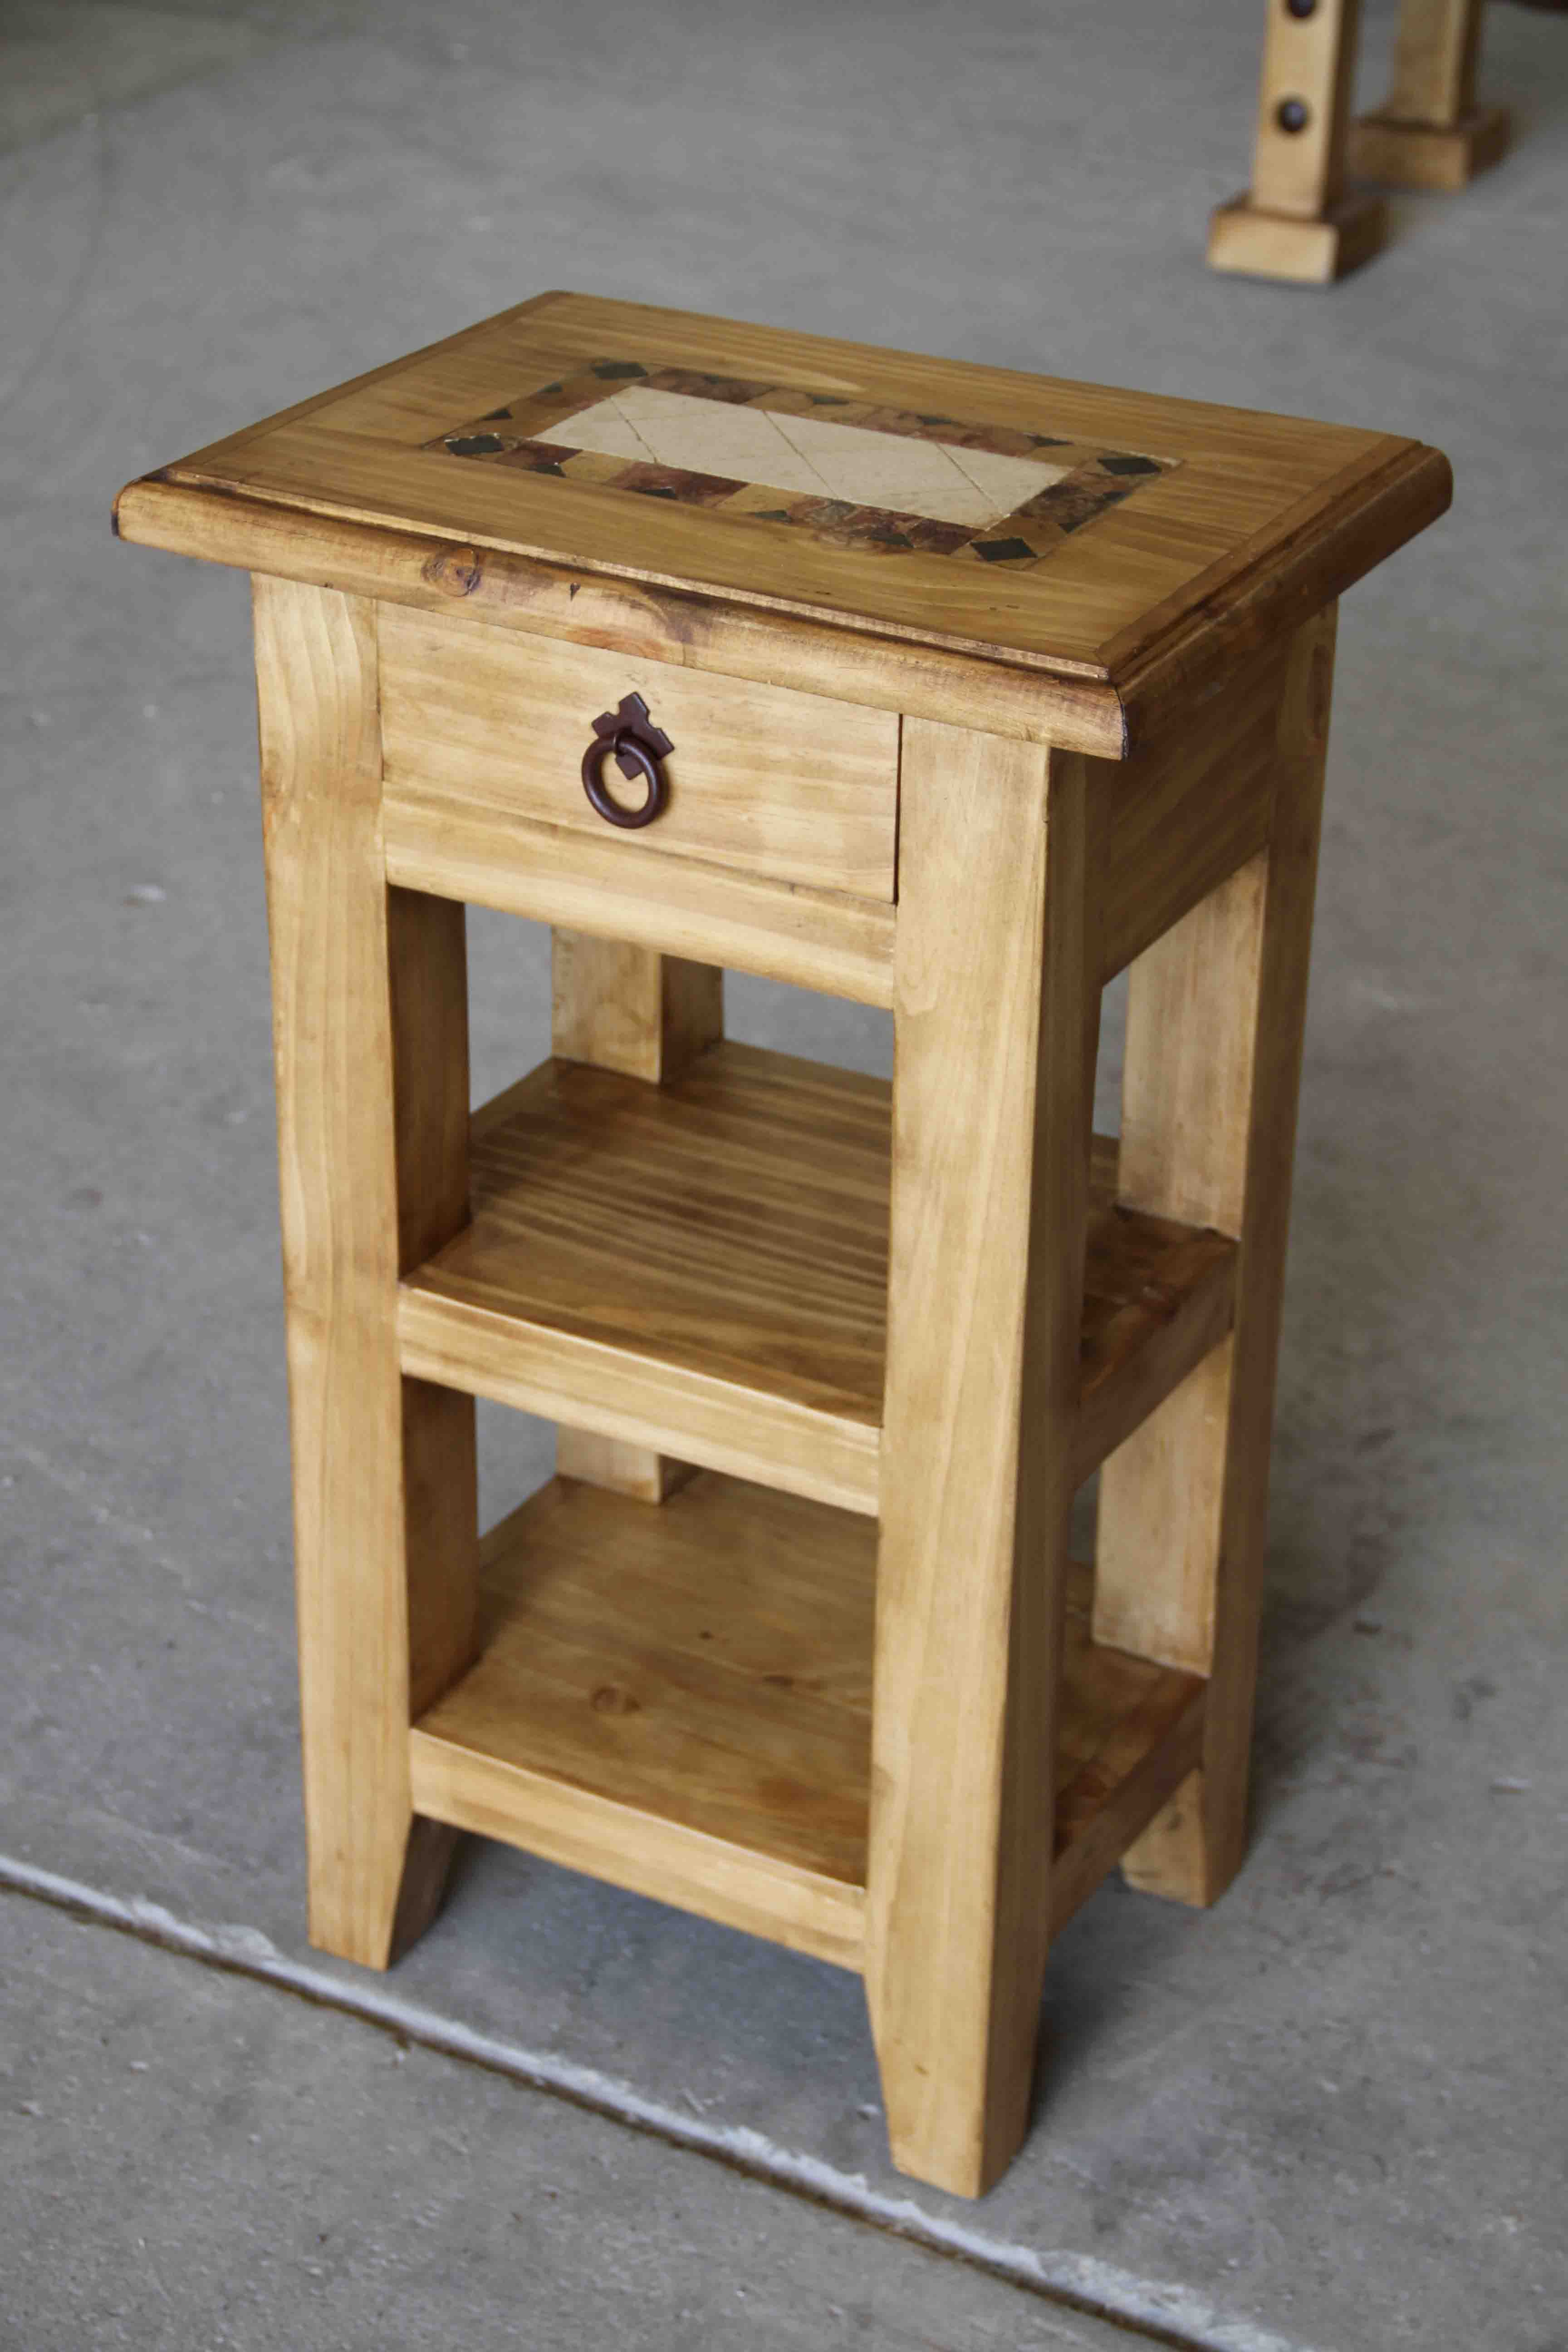 Pine Living Room Furniture Small Rustic Pine End Table Living Room Rustic Furniture